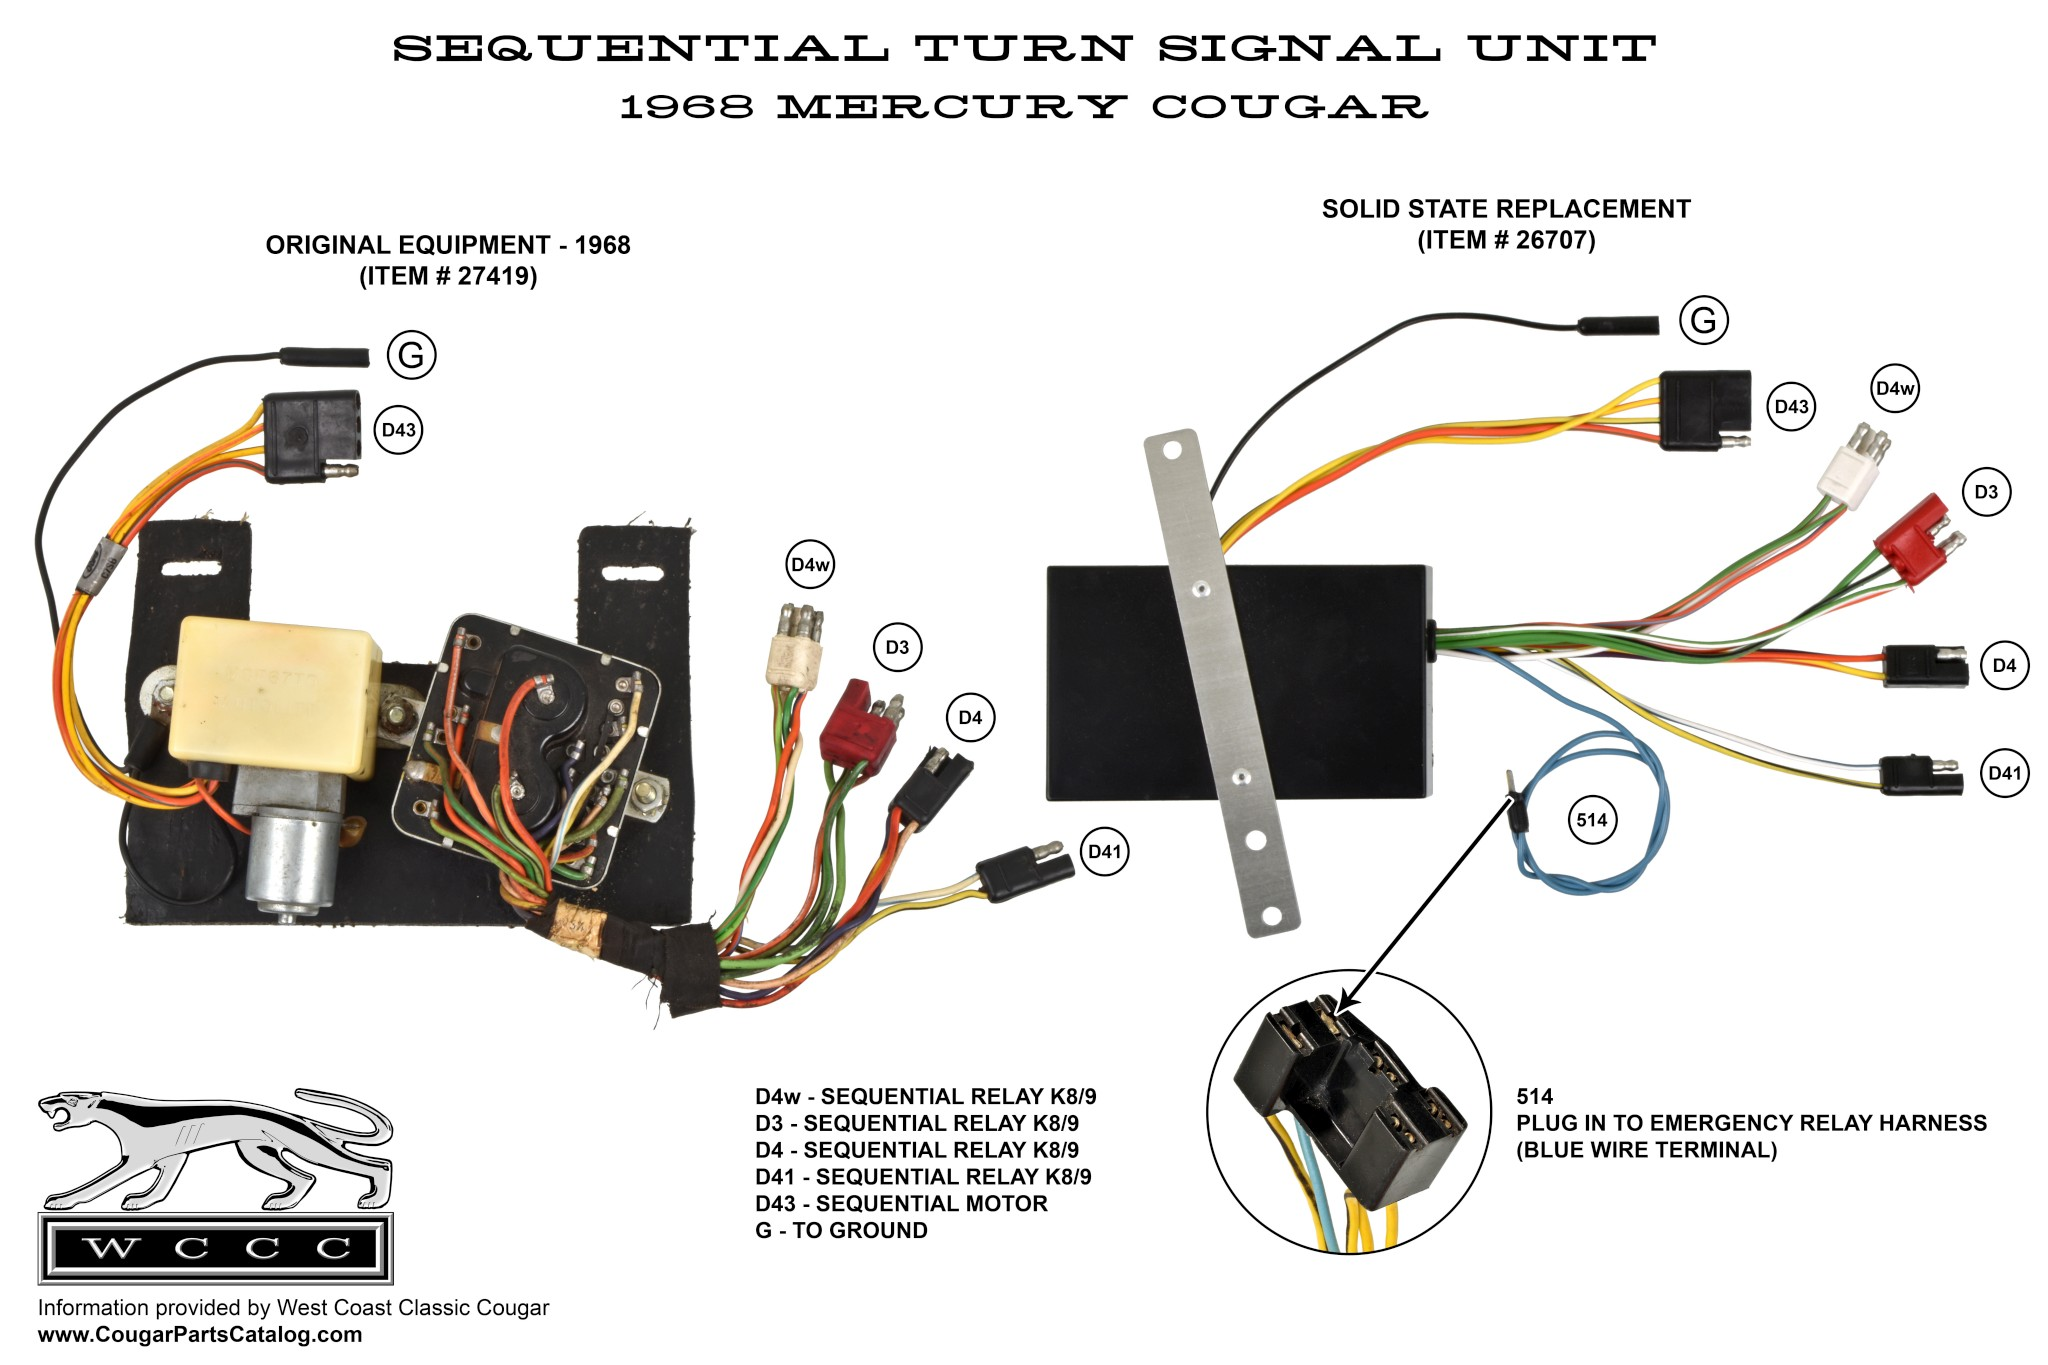 Sequential Turn Signal Assembly - Used ~ 1968 Mercury ...